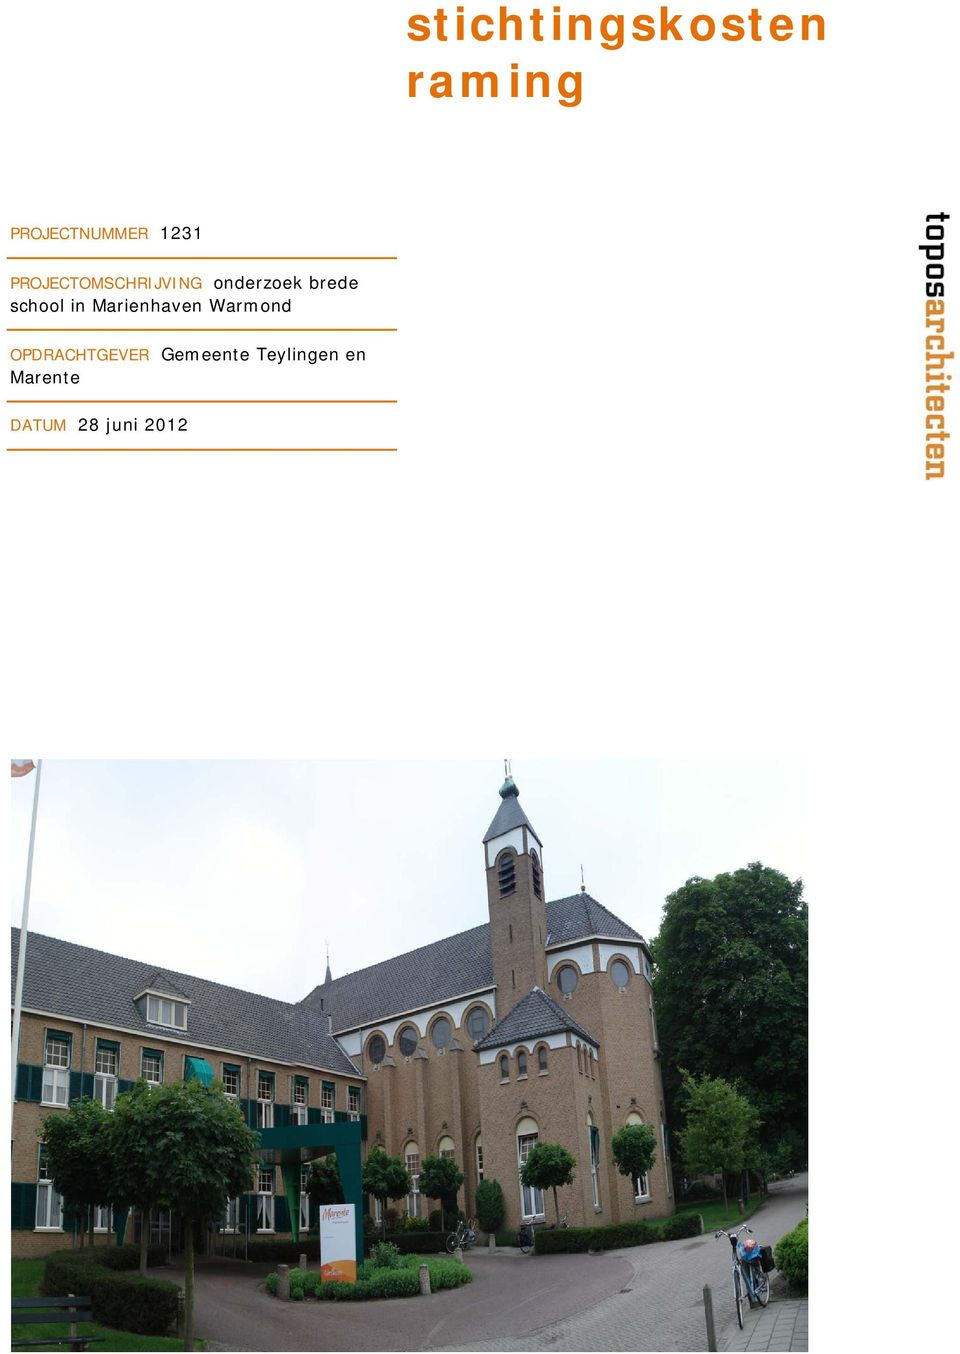 brede school in Marienhaven Warmond